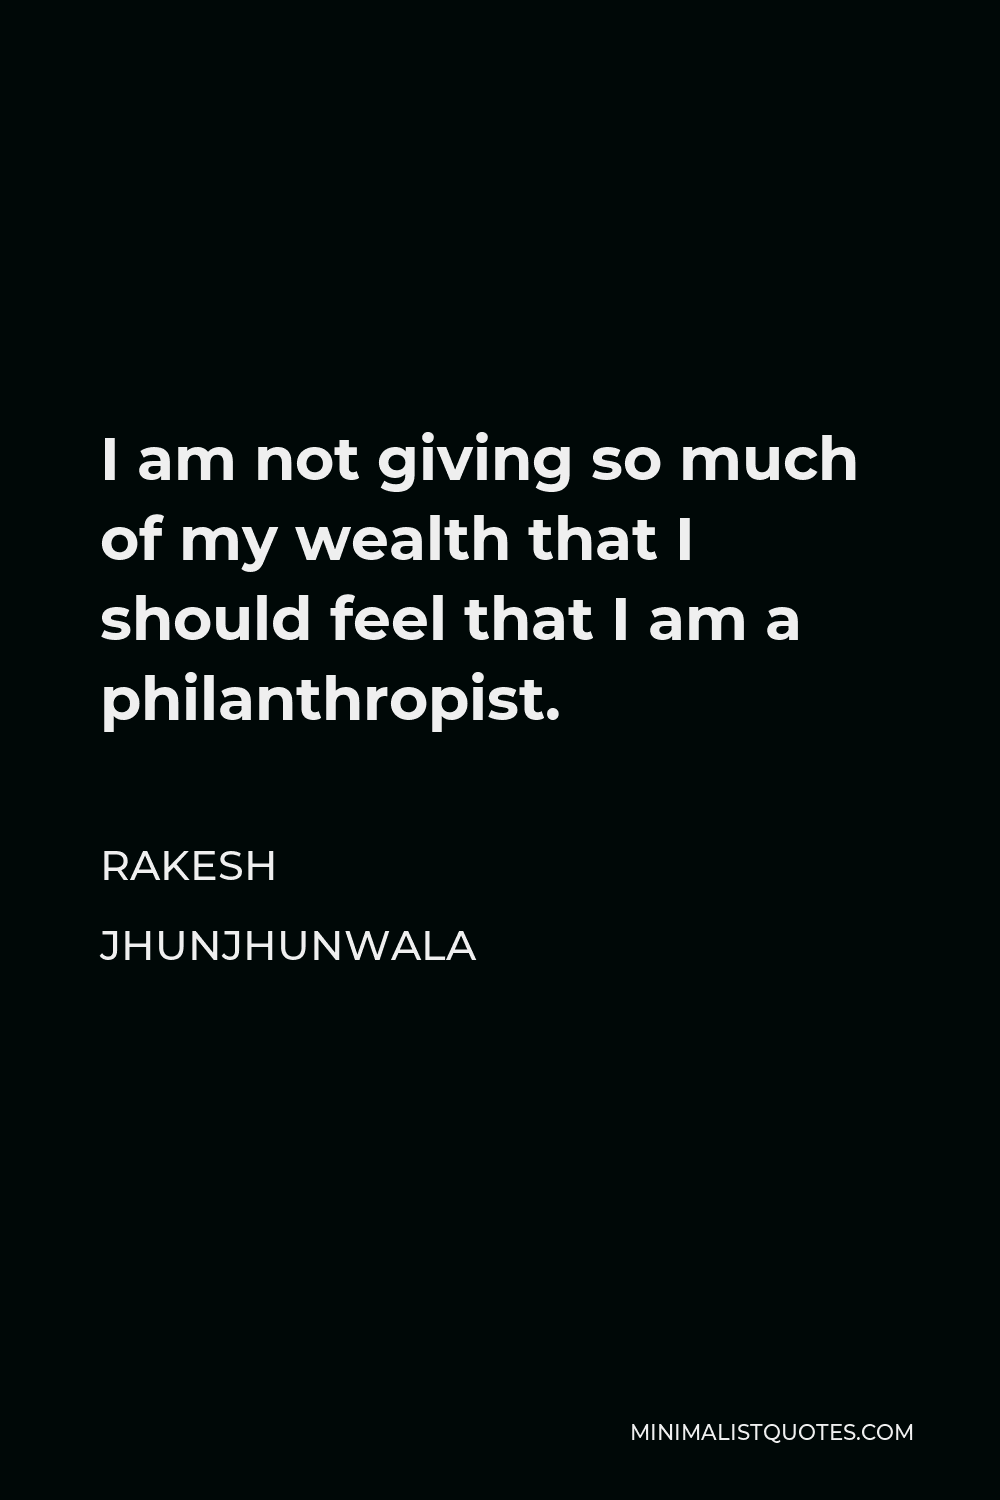 Rakesh Jhunjhunwala Quote - I am not giving so much of my wealth that I should feel that I am a philanthropist.